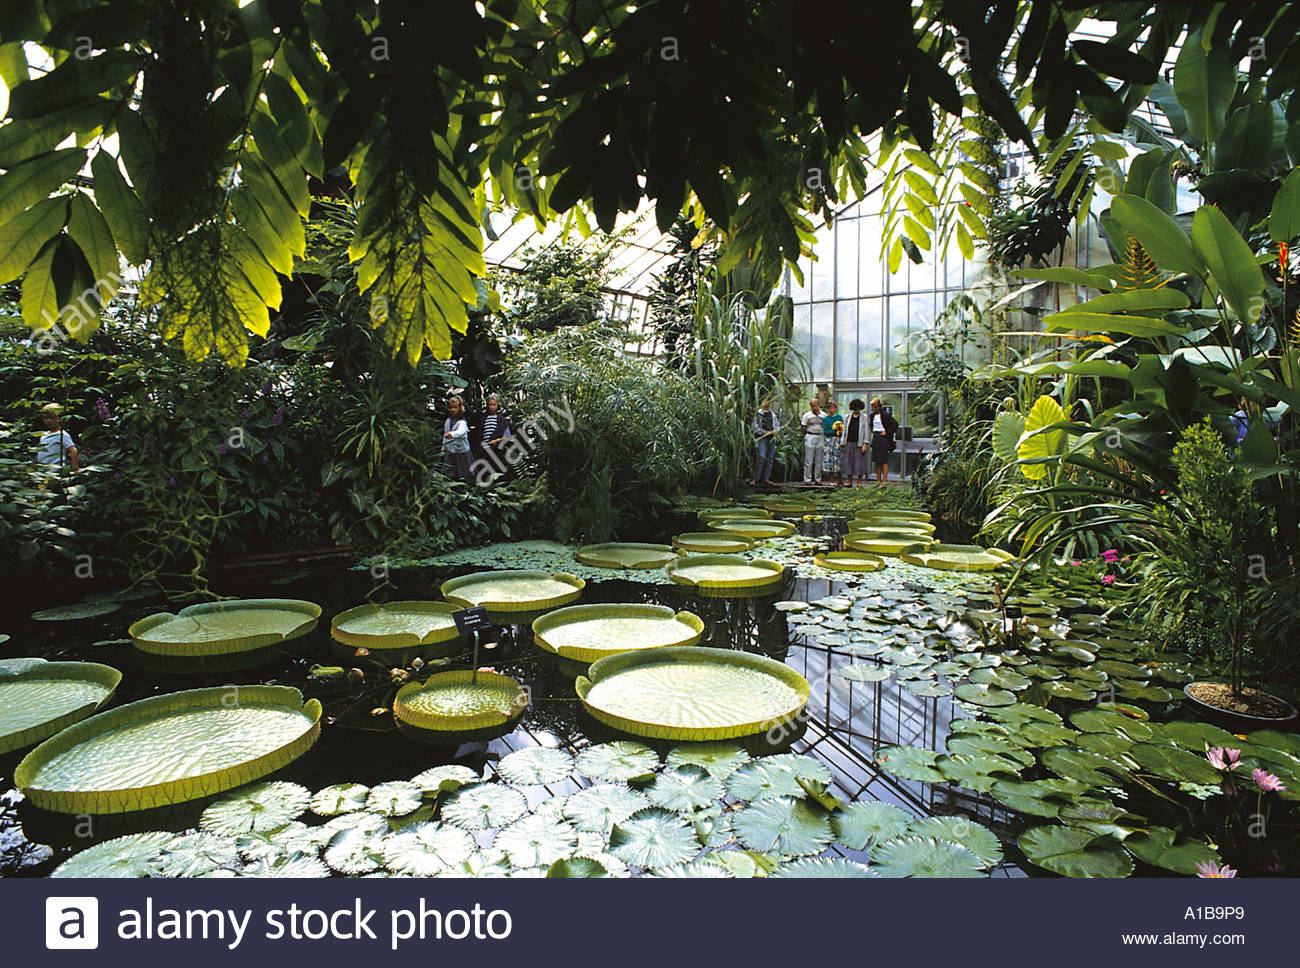 A POND INSIDE ONE OF THE GLASS HOUSES IN THE ROYAL BOTANIC GARDEN EDINBURGH